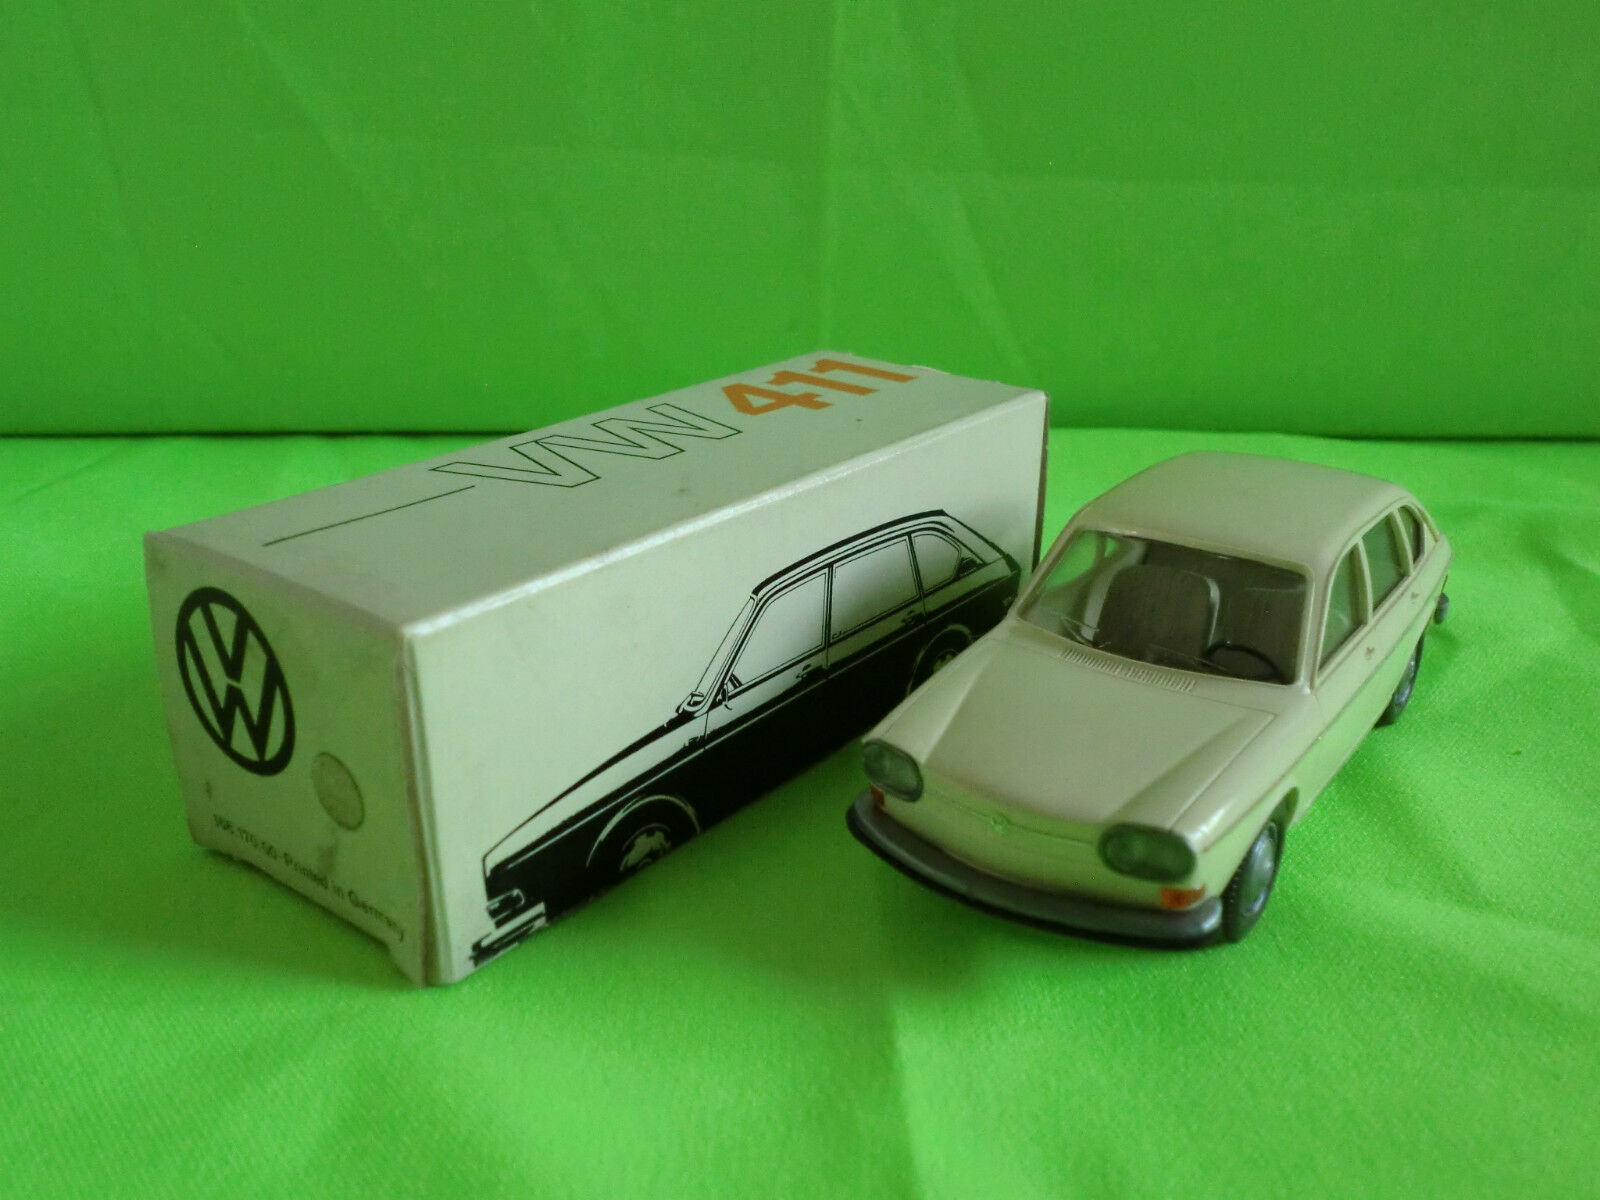 CURSOR 1 40  VW VOLKSWAGEN   411  -   IN BOX  -    IN NEAR  MINT CONDITION